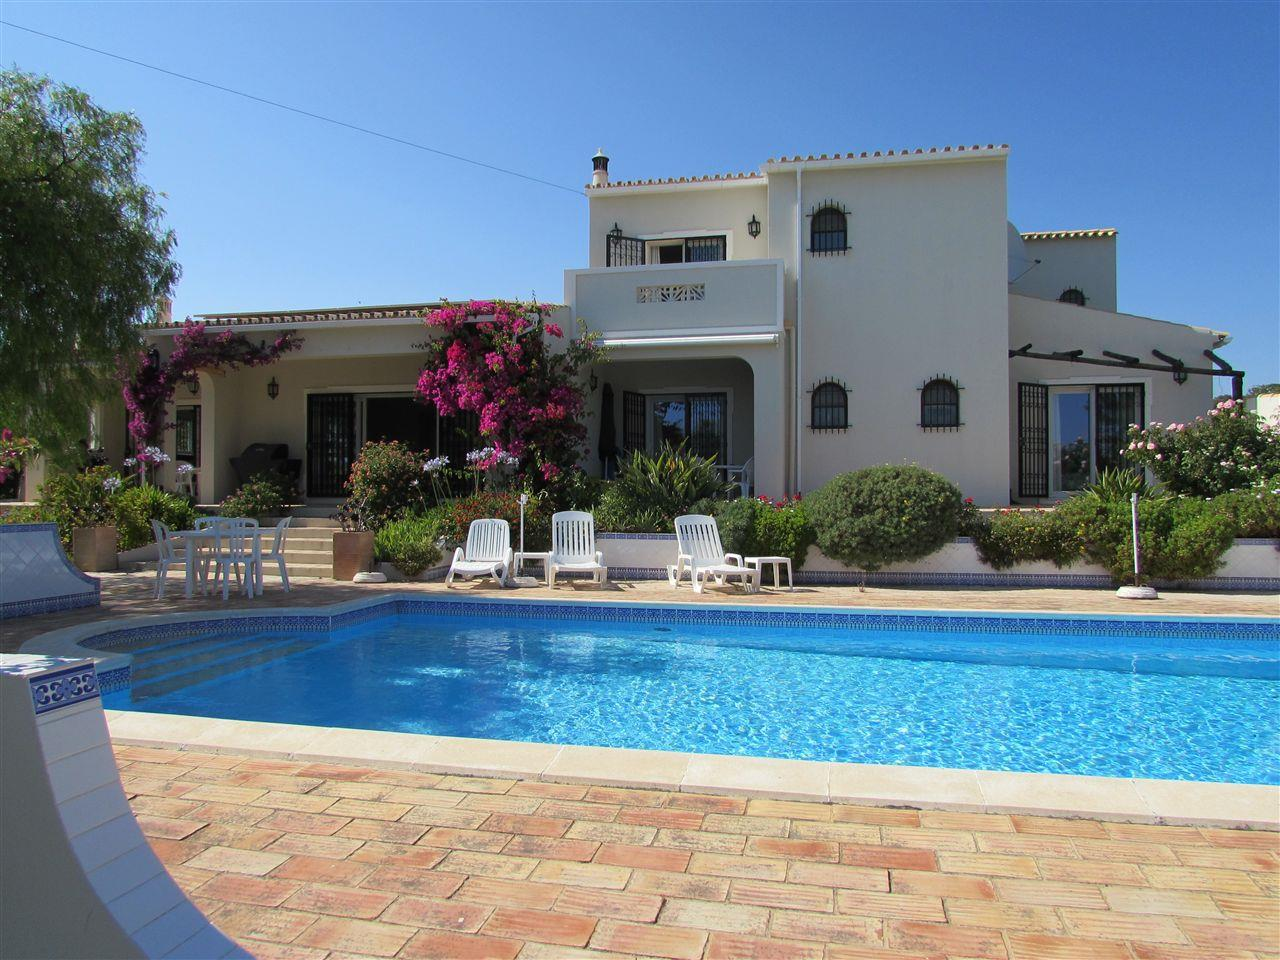 Single Family Home for Sale at Detached house, 4 bedrooms, for Sale Loule, Algarve - Portugal